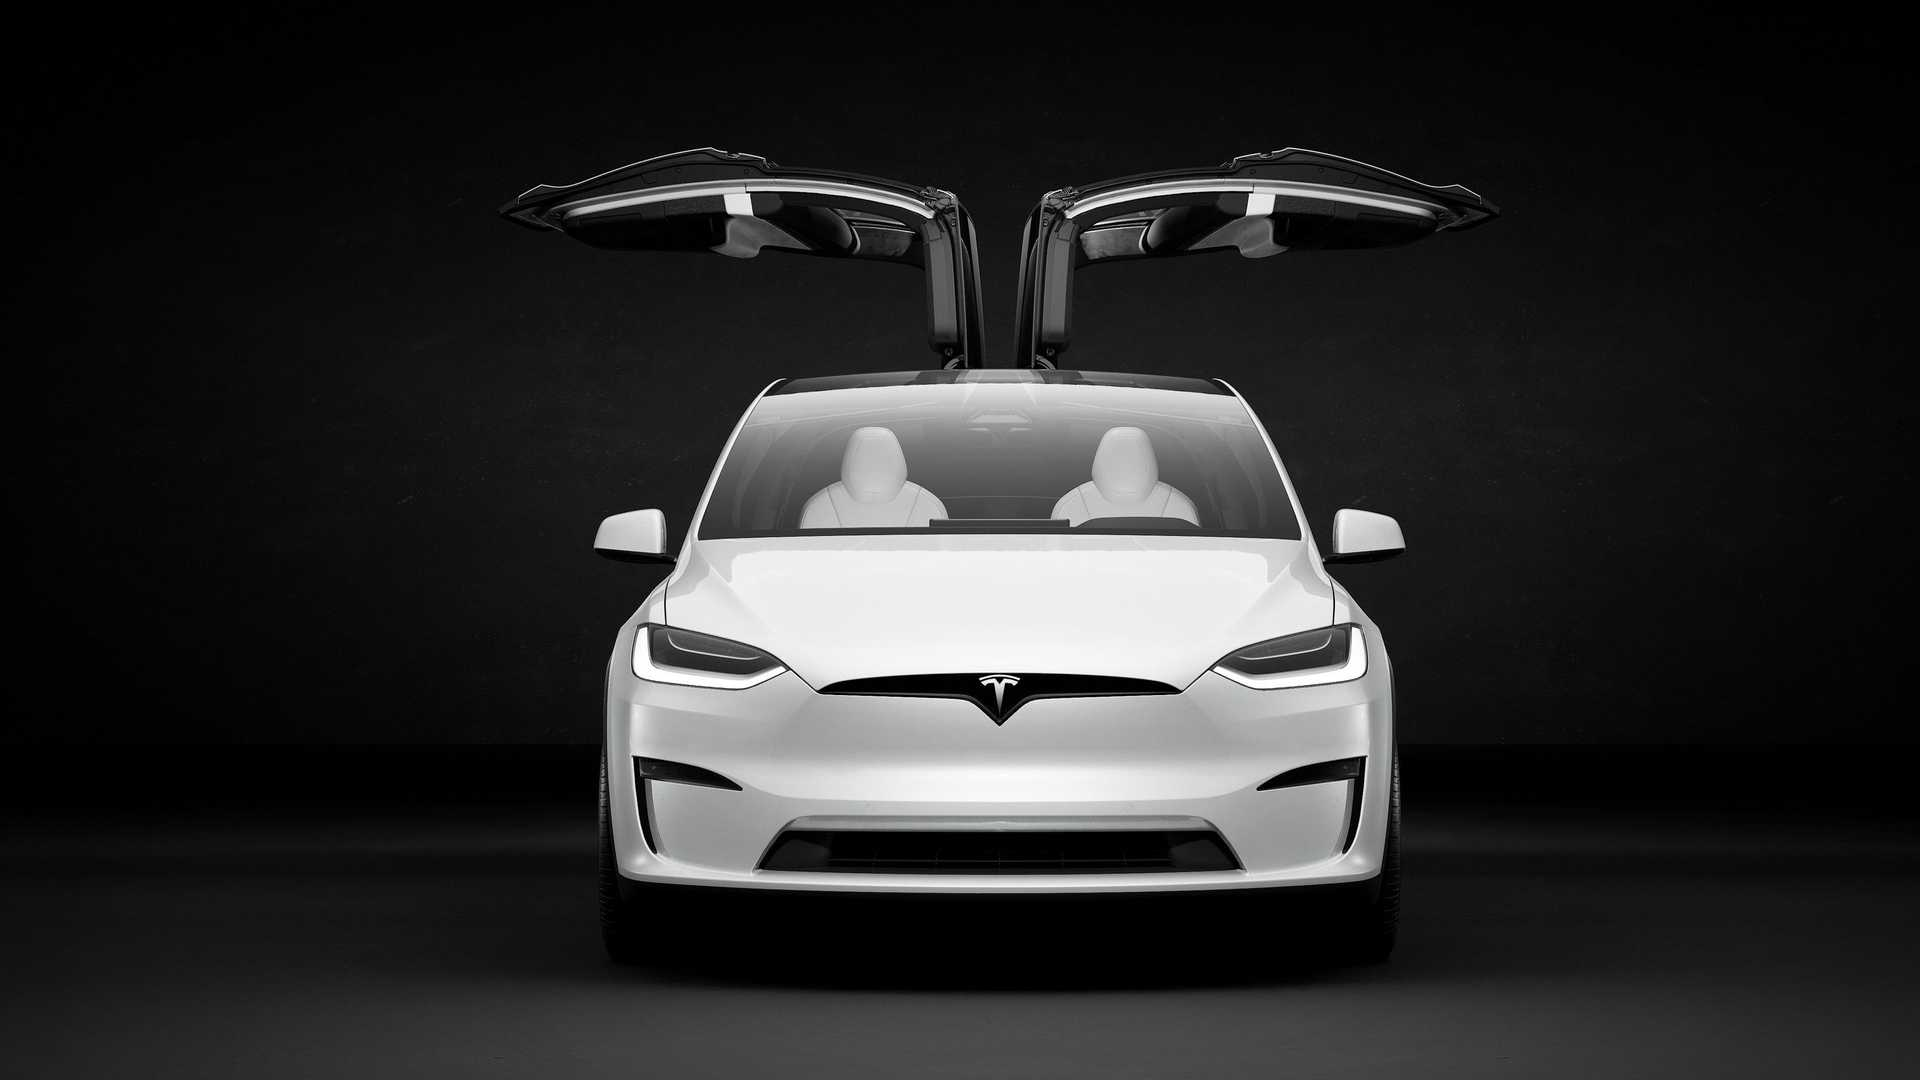 Say nothing about the Tesla Model X Plaid at the event? Think again, it was  there - Autobala